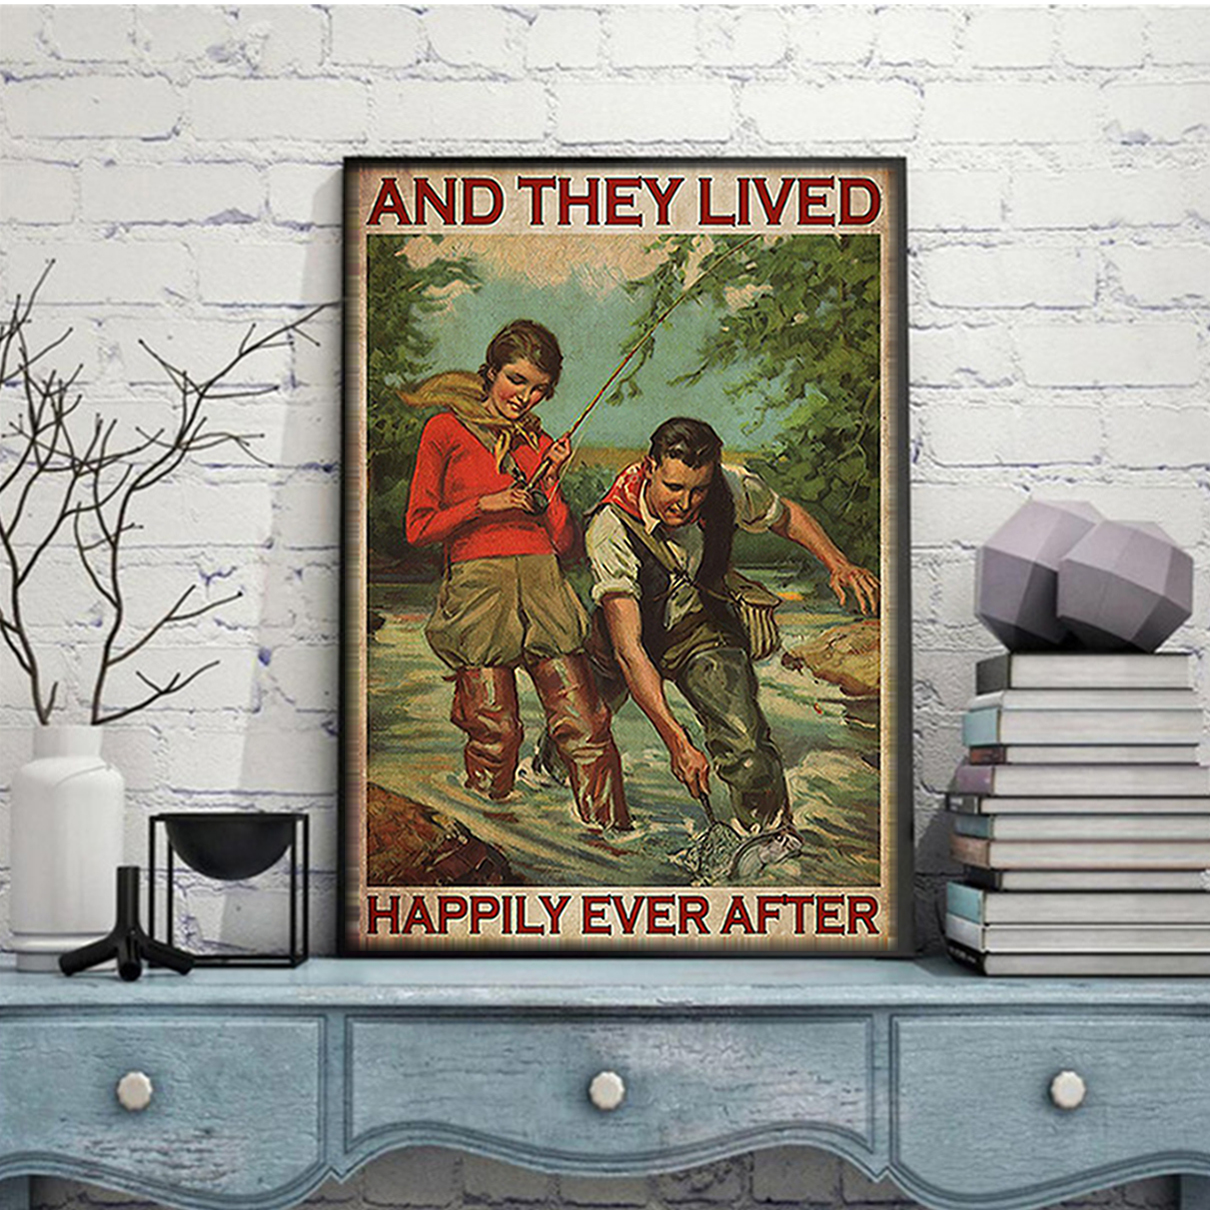 Fishing couple and they lived happily ever after poster A3